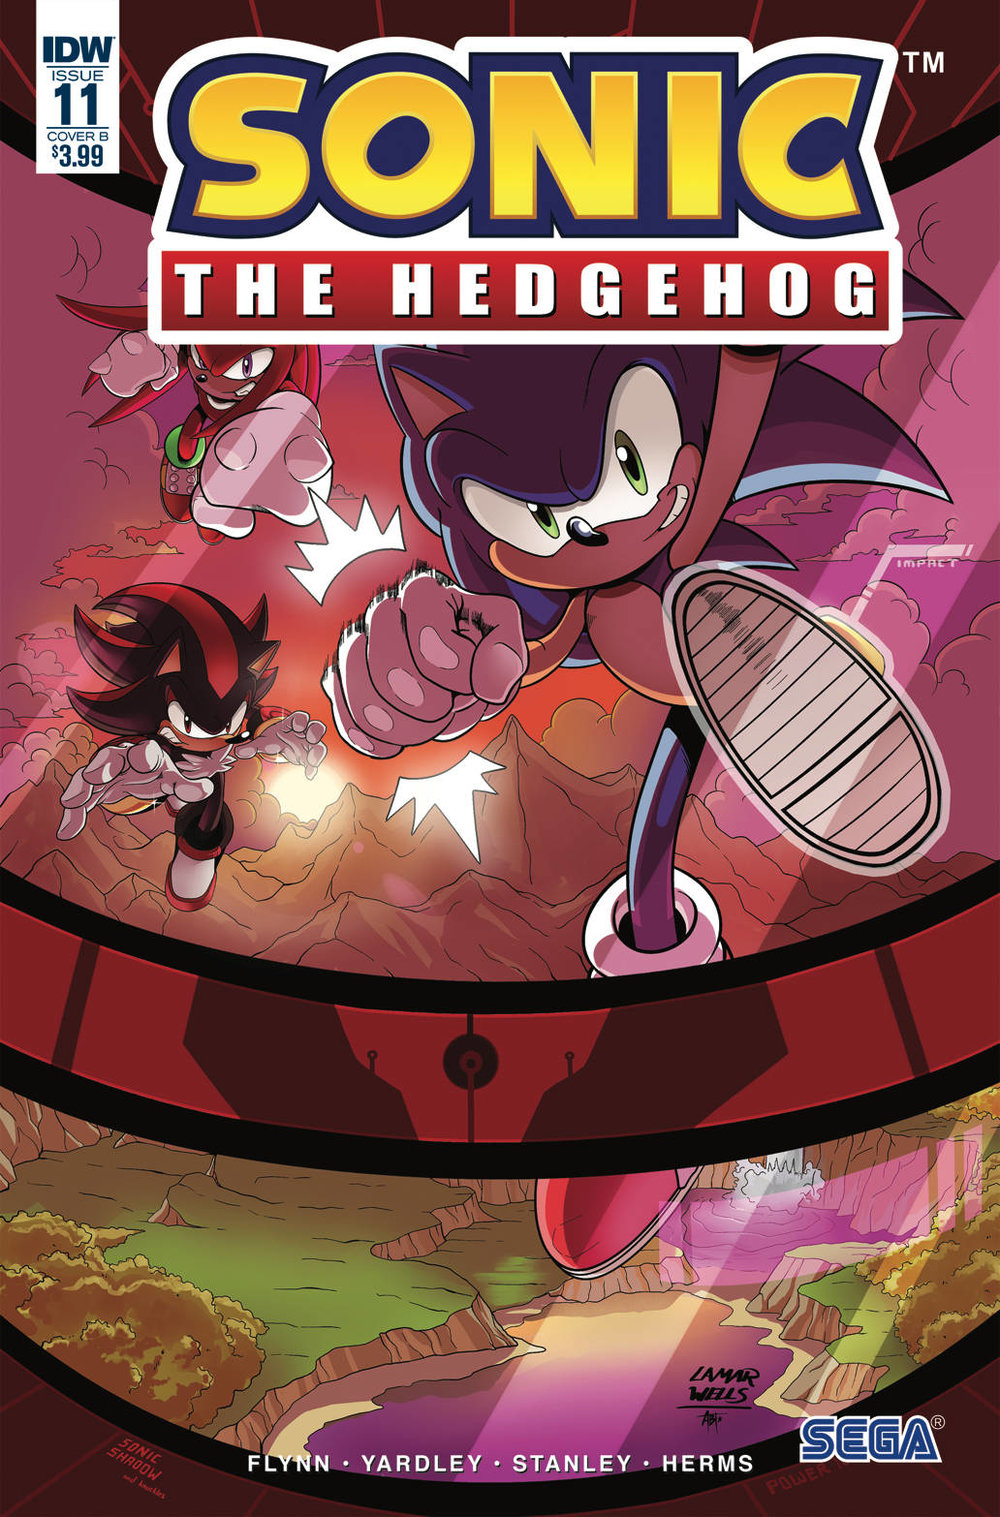 SONIC THE HEDGEHOG 11 CVR B YARDLEY.jpg